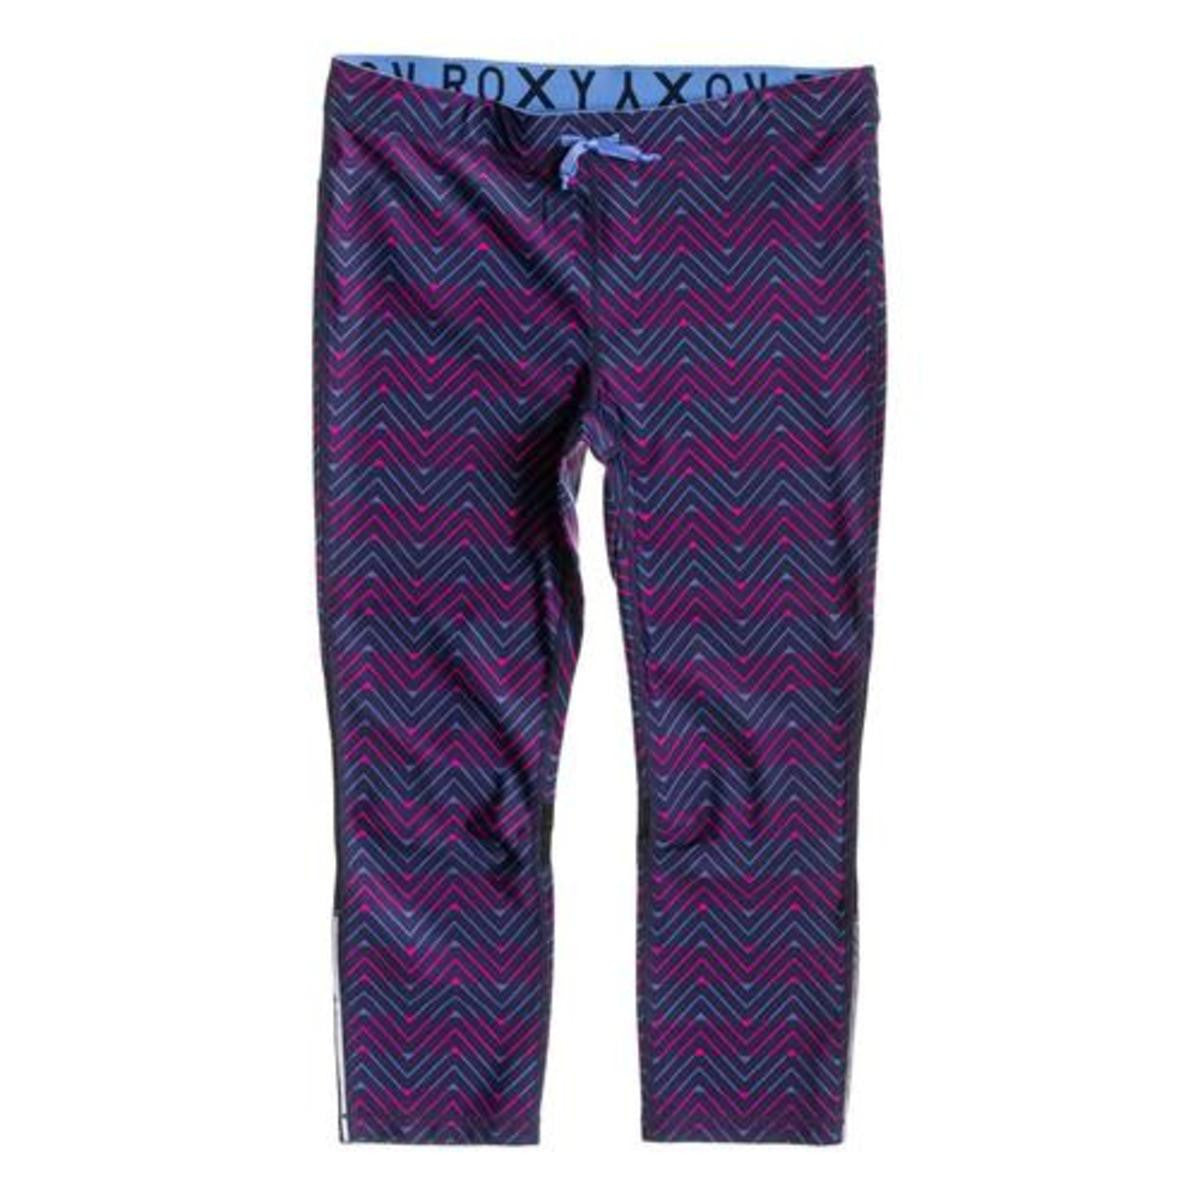 Roxy Relay Capri Astral Aura Chevron New Womens